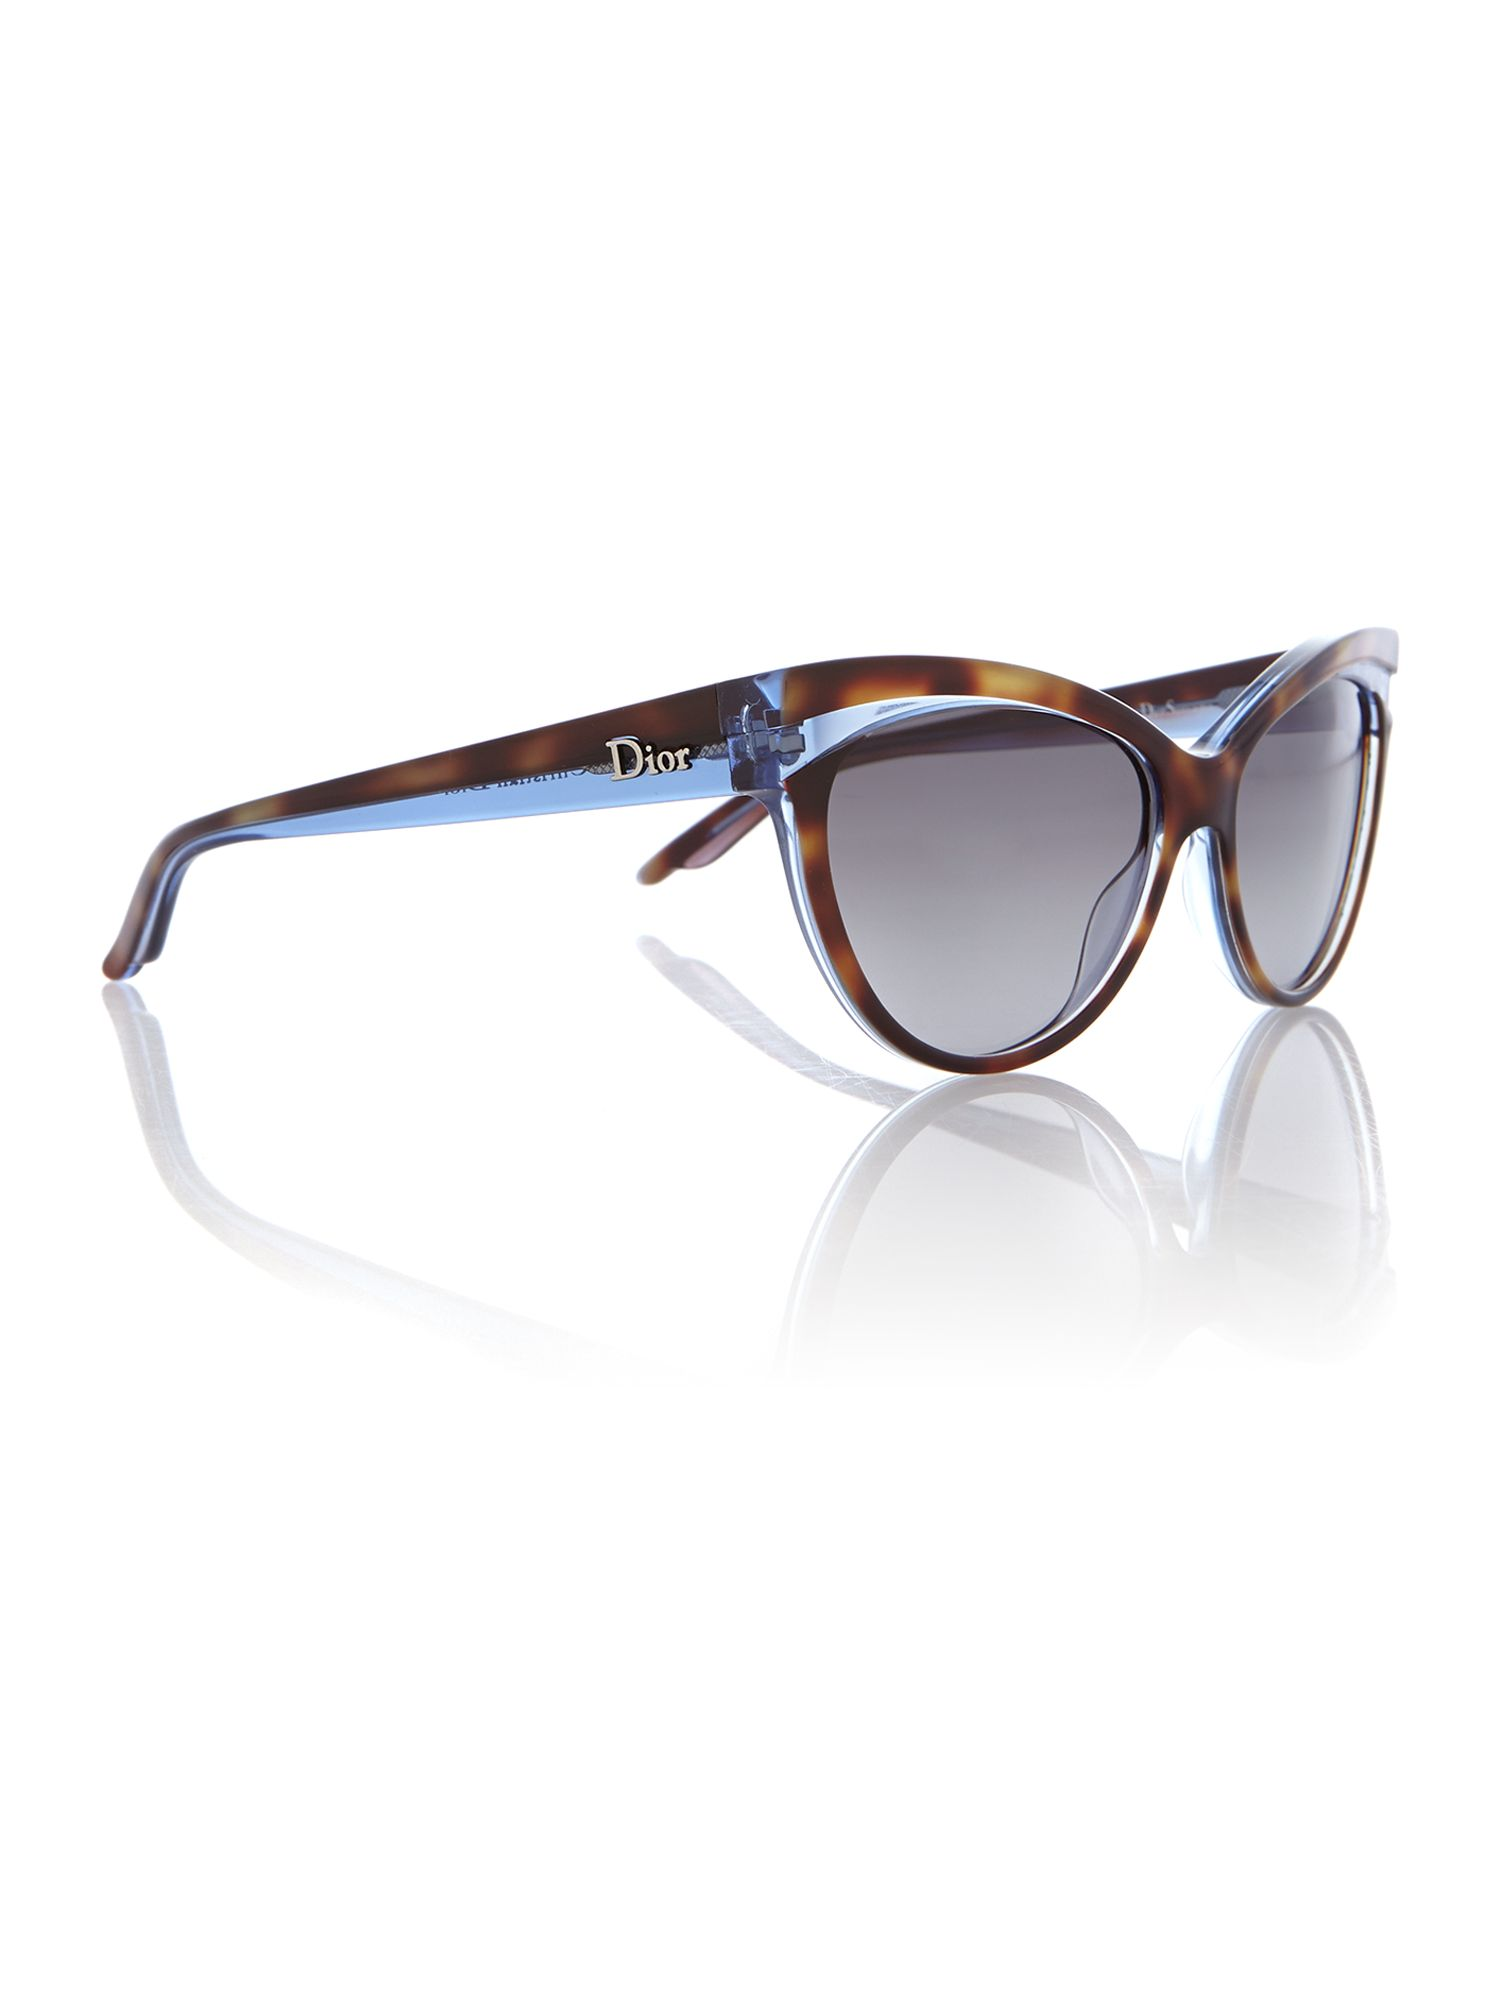 Diorsauvage1 ladies rectangle sunglasses